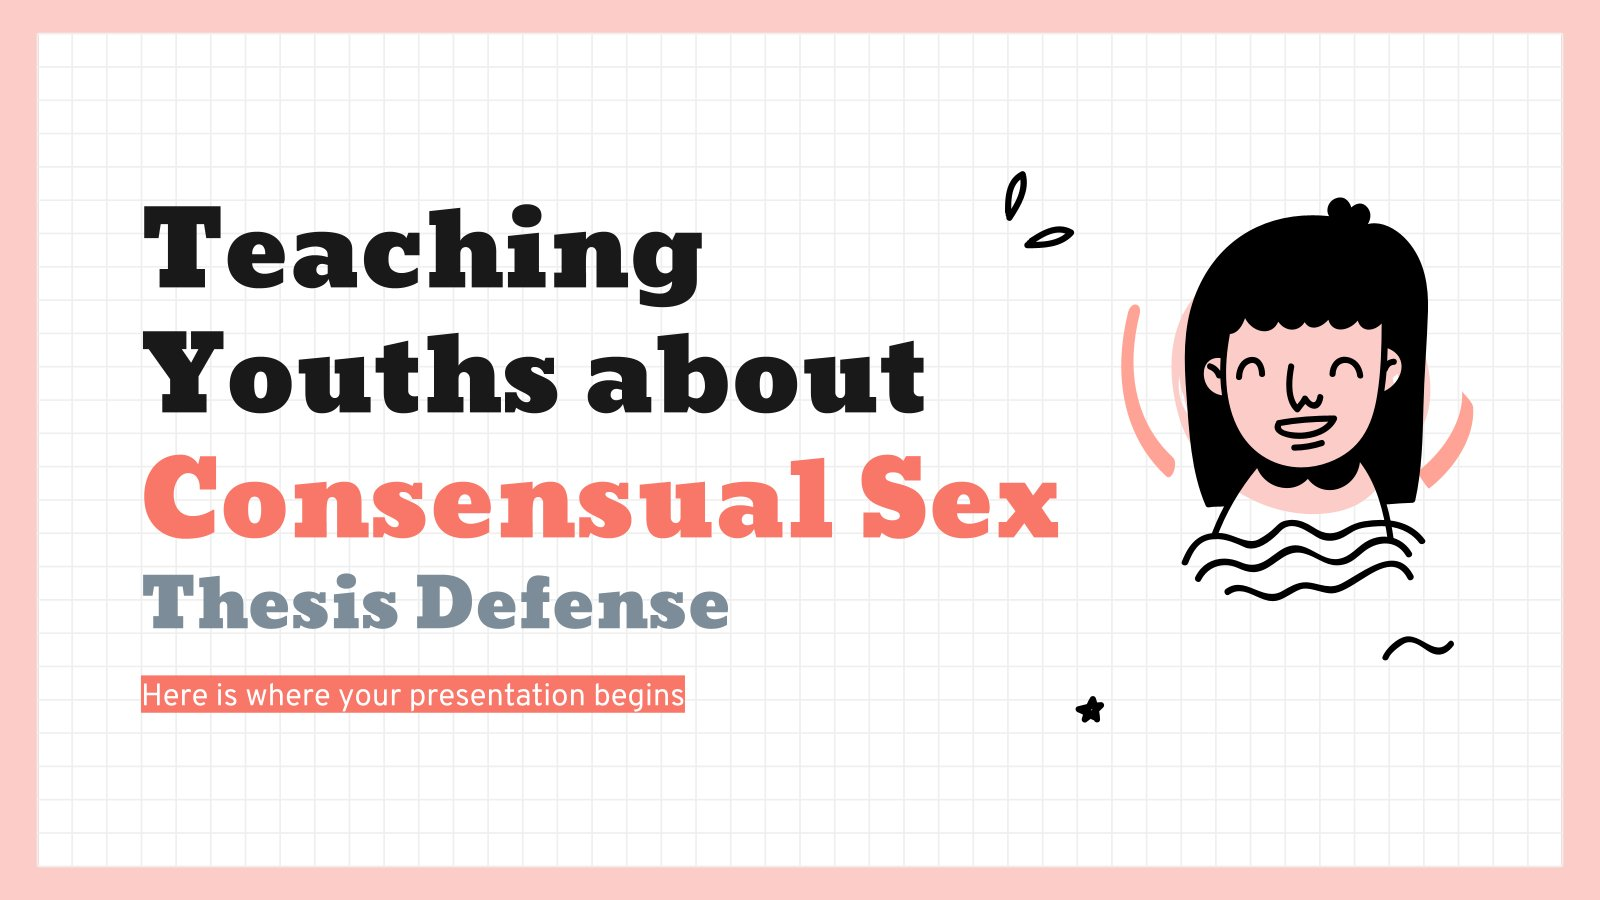 Teaching Youths about Consensual Sex Thesis Defense presentation template